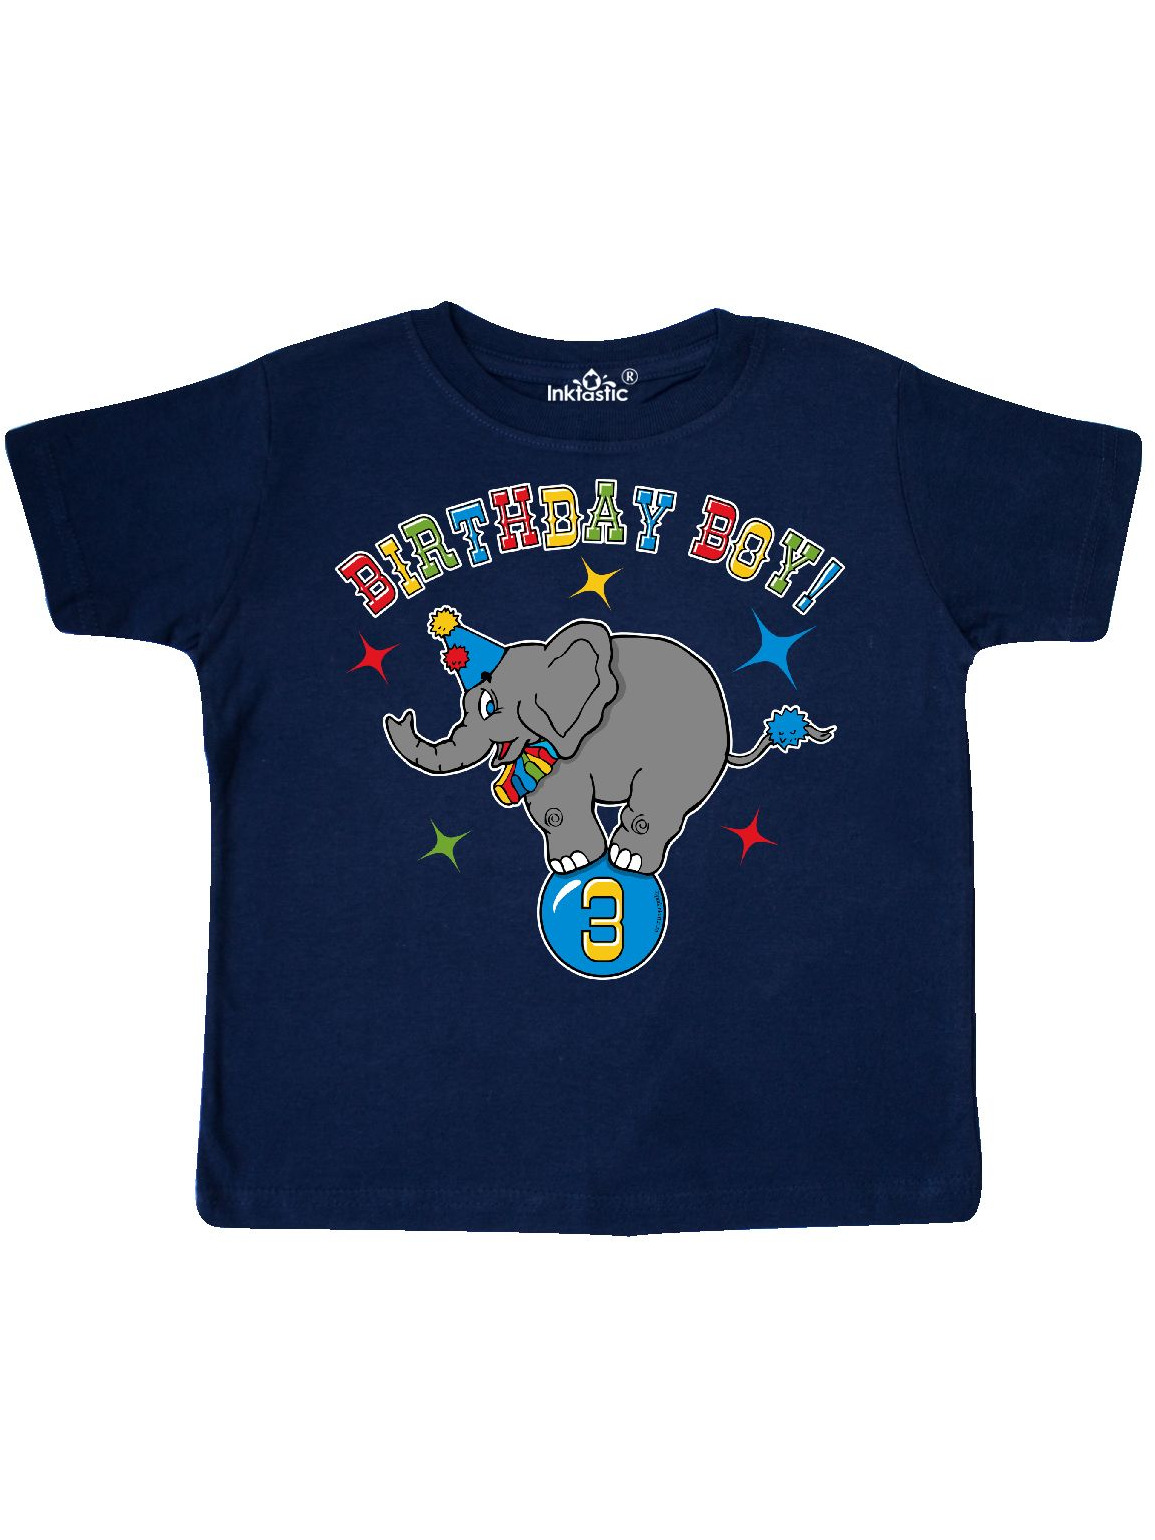 Circus Elephant 3rd Birthday Boy Toddler T Shirt